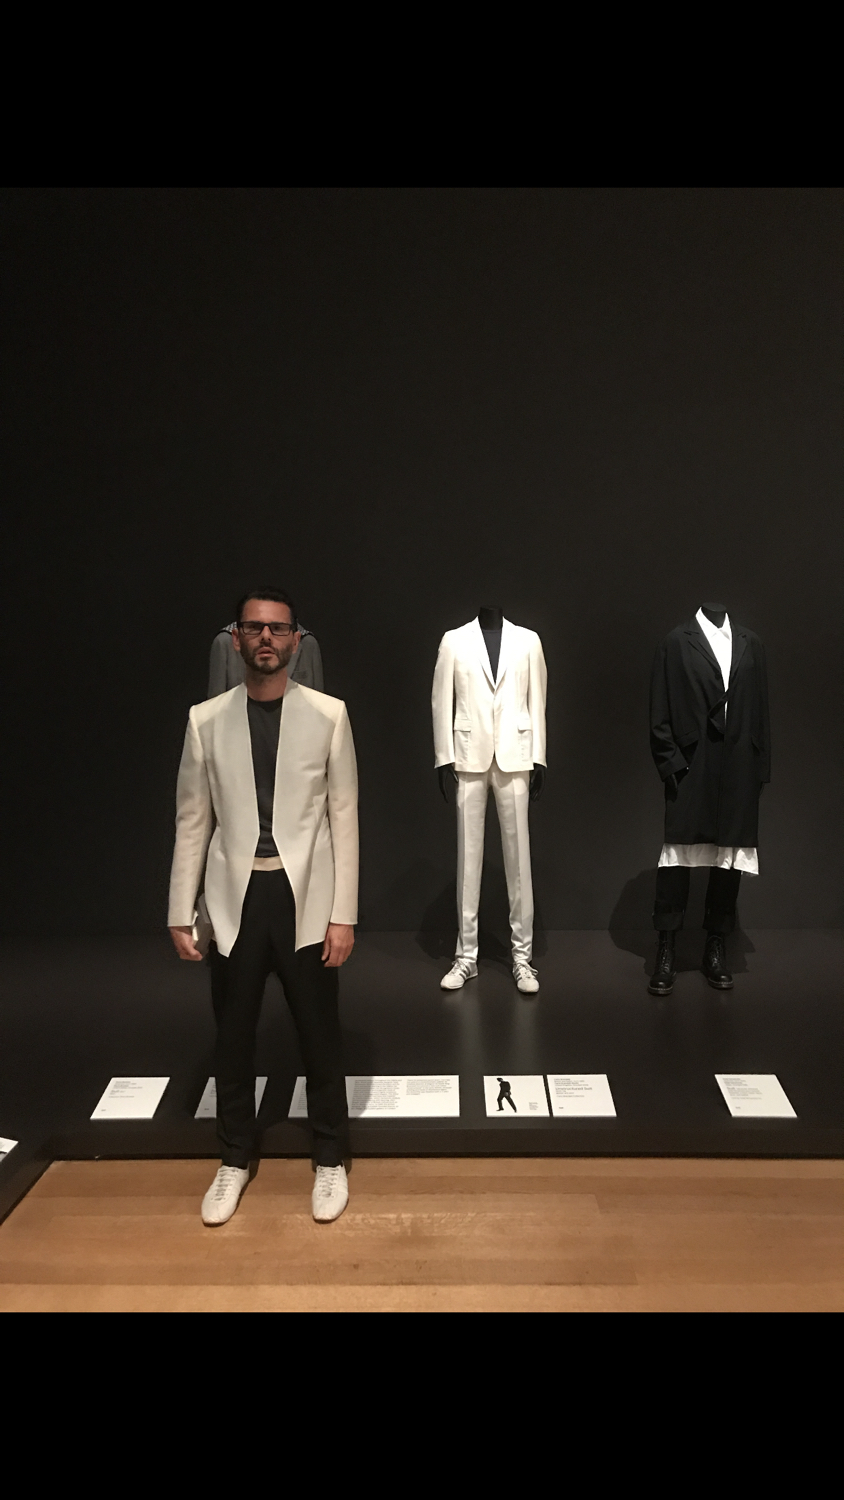 At the opening of the Museum of Modern Art's show September 2017, in the background my original white suit design from unstructured from 2005.